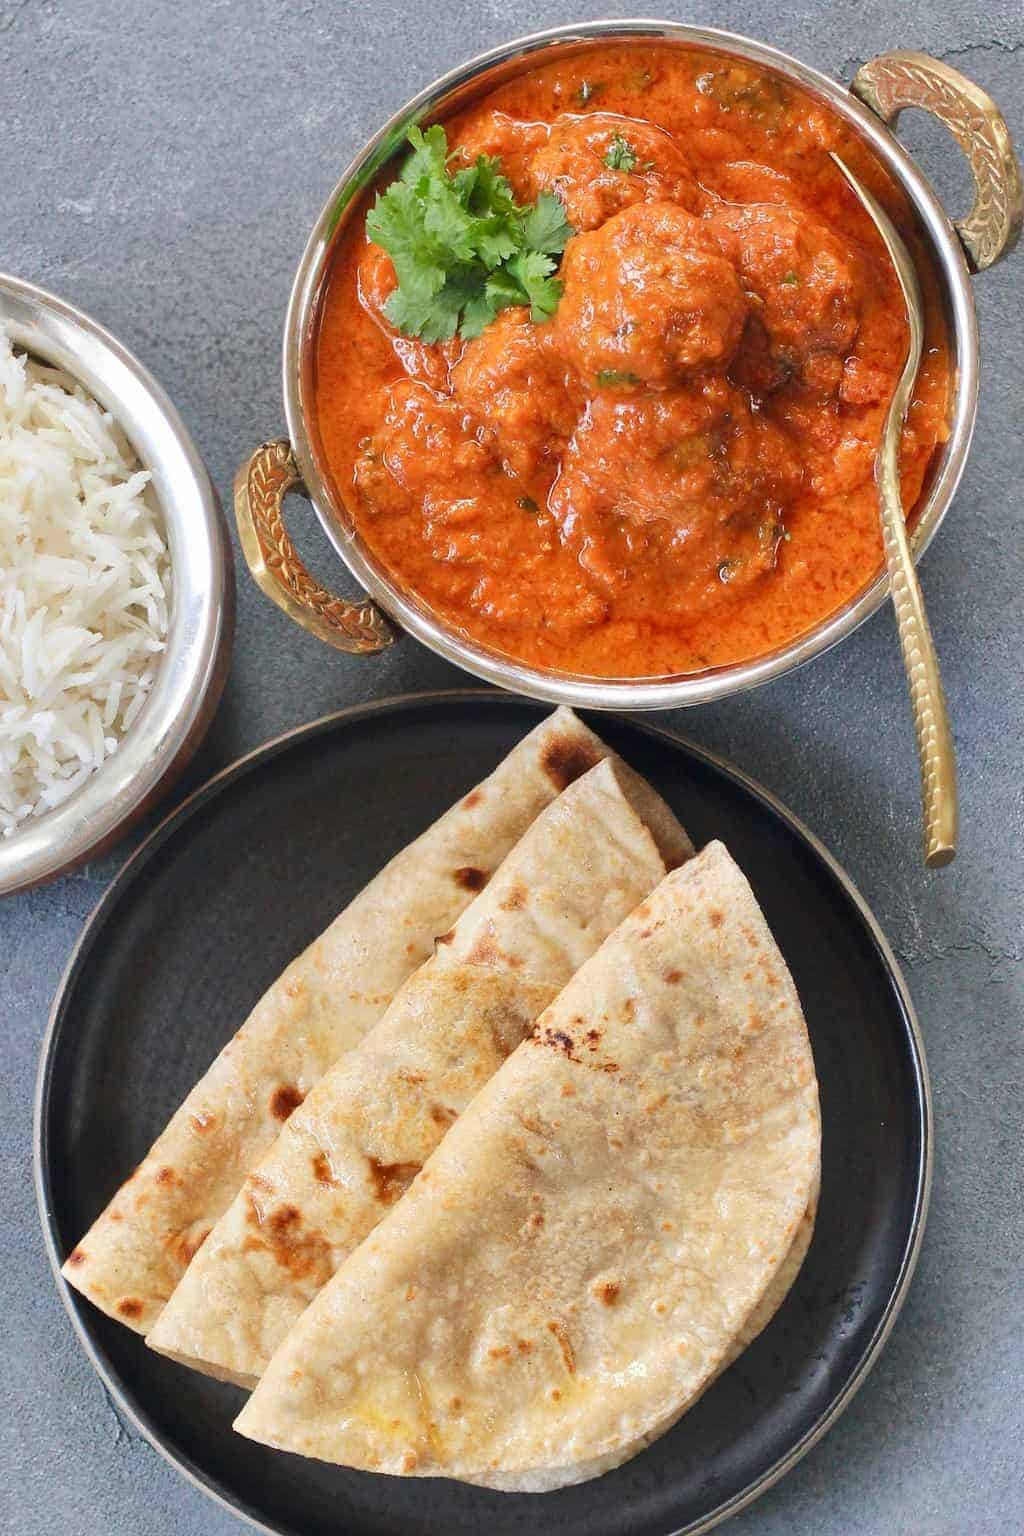 Malai Kofta served with rice and rotis